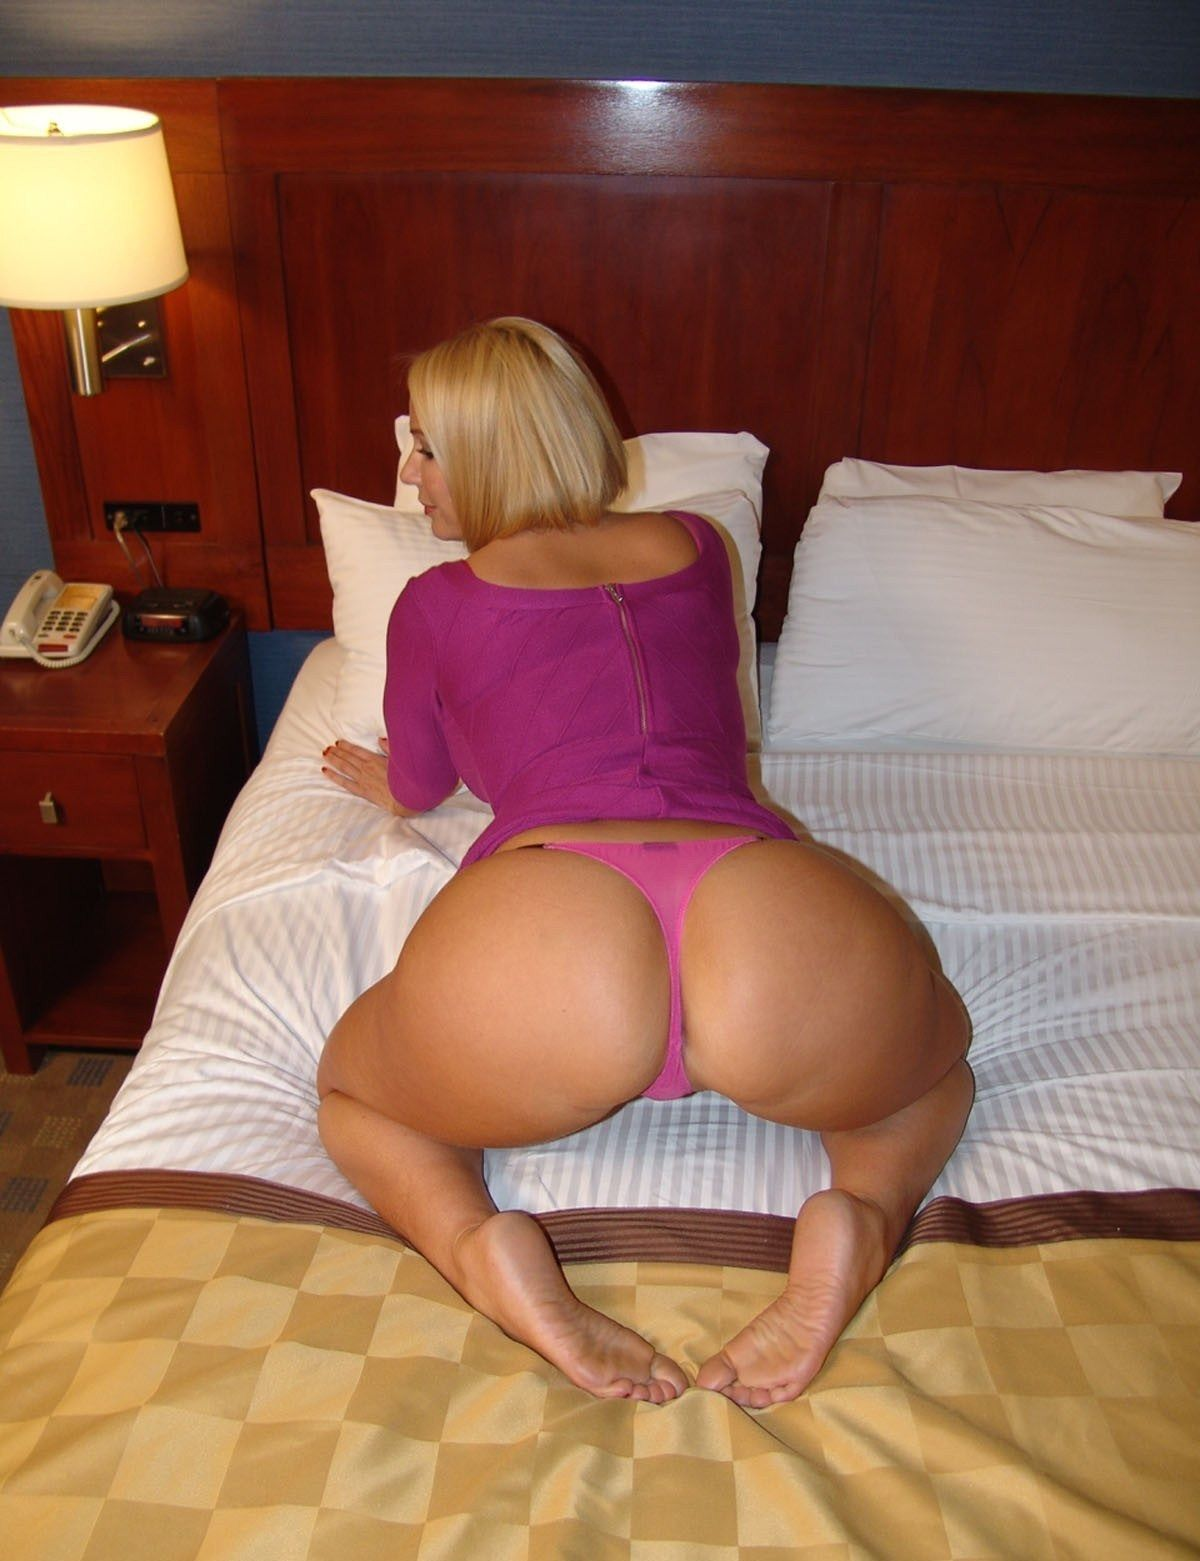 sexy pawg | thick white | pinterest | nice asses, housewife and nice